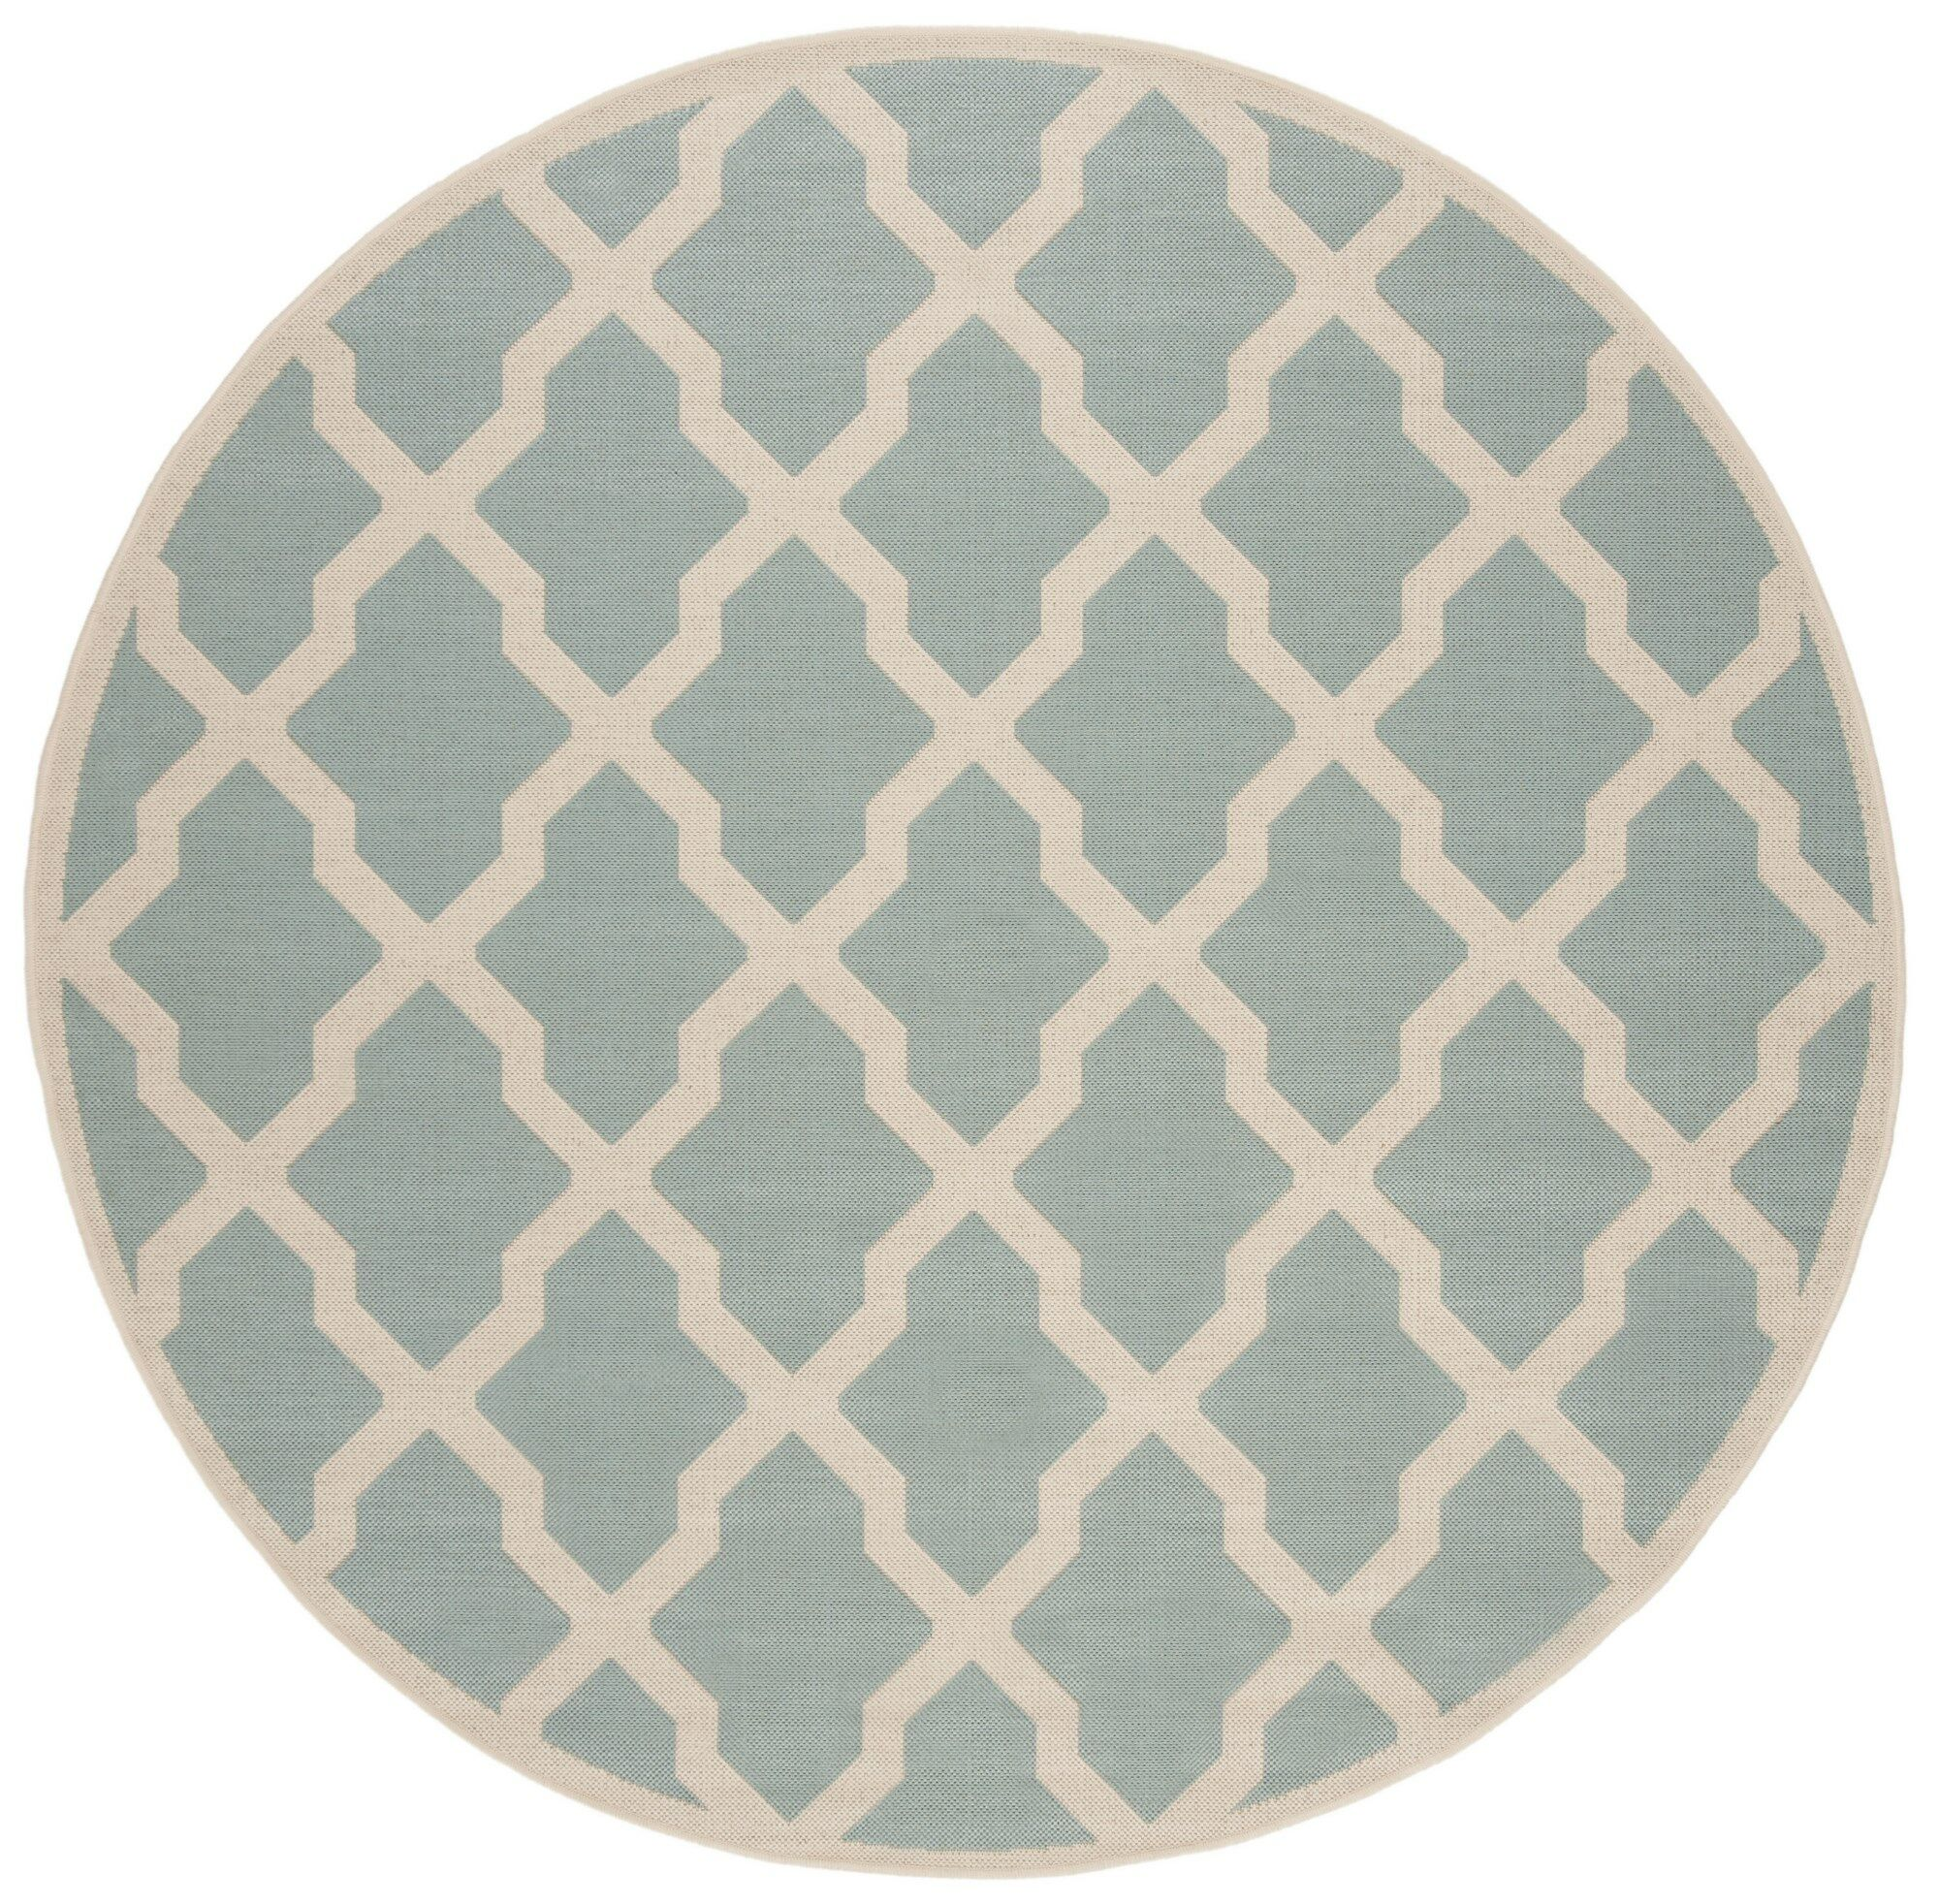 Backstrom Hand-Tufted Turquoise Area Rug Rug Size: Round 6'